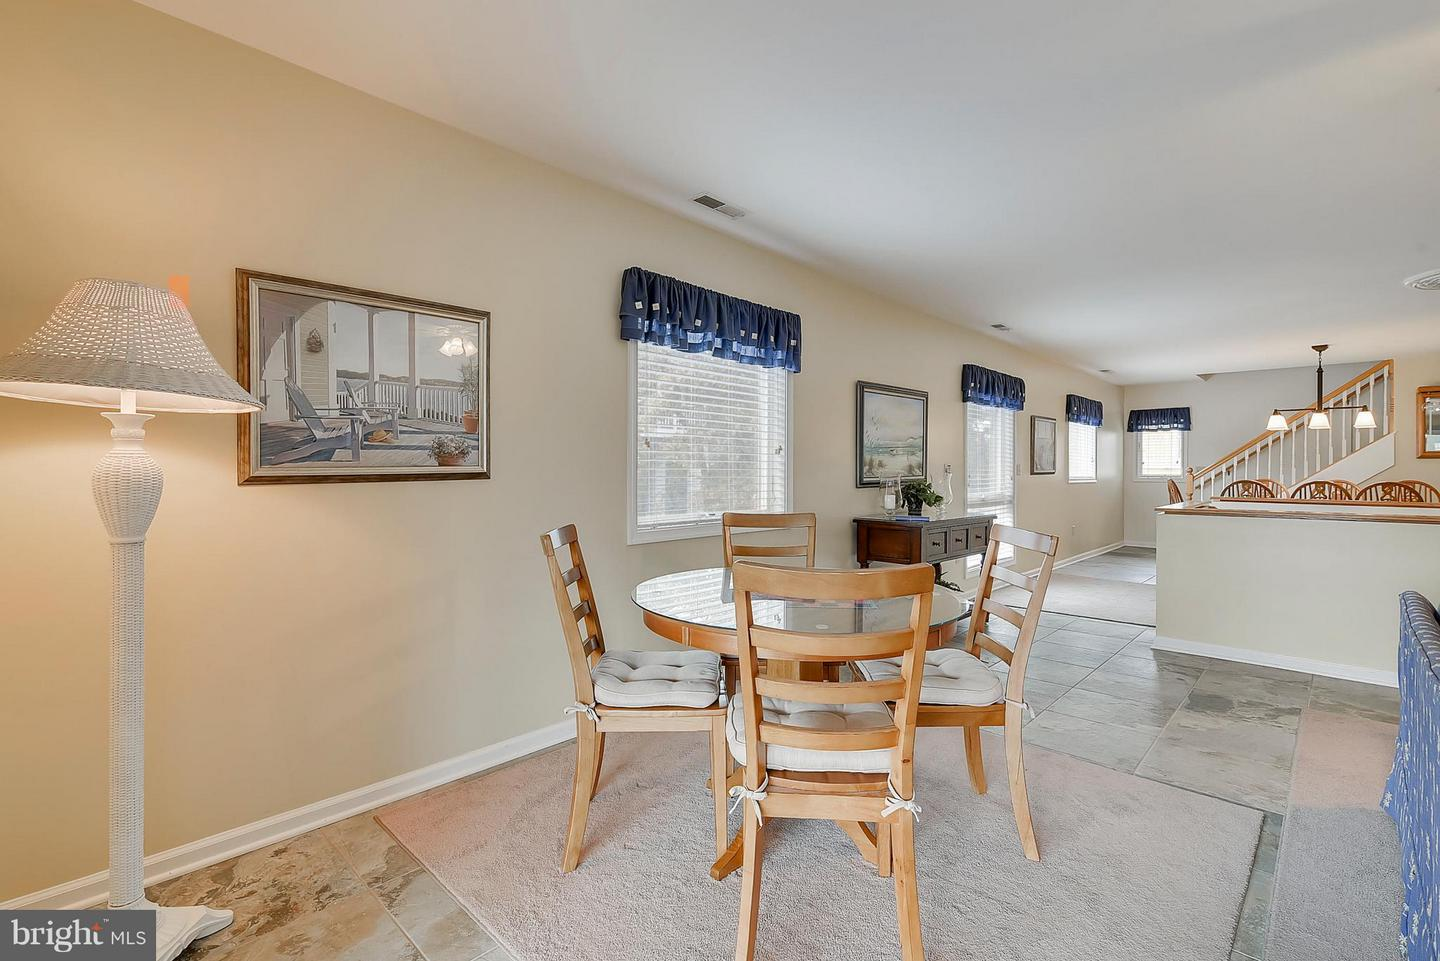 1002344128-300986986459-2018-11-07-14-16-58 39634 Seatrout Cir | North Bethany, DE Real Estate For Sale | MLS# 1002344128  - 1st Choice Properties